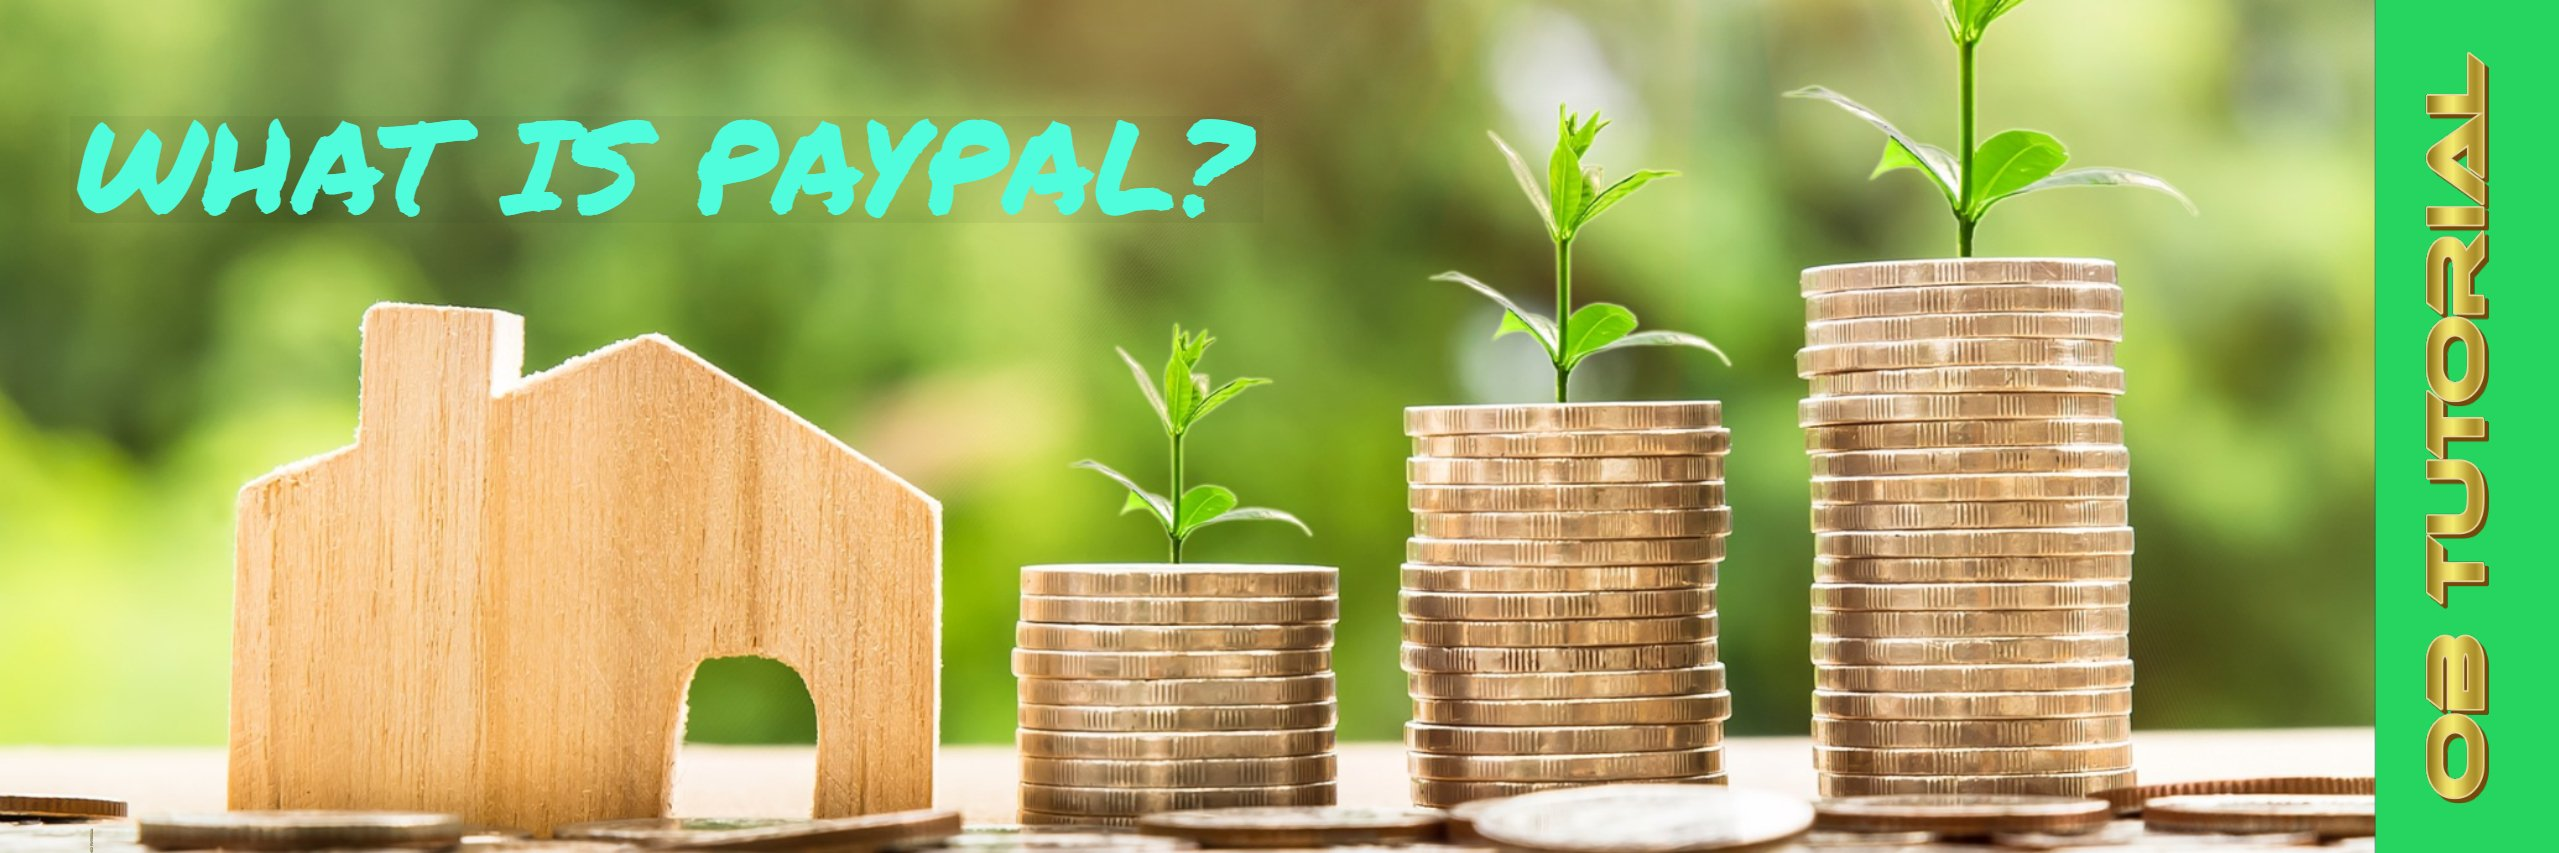 What is paypal.com